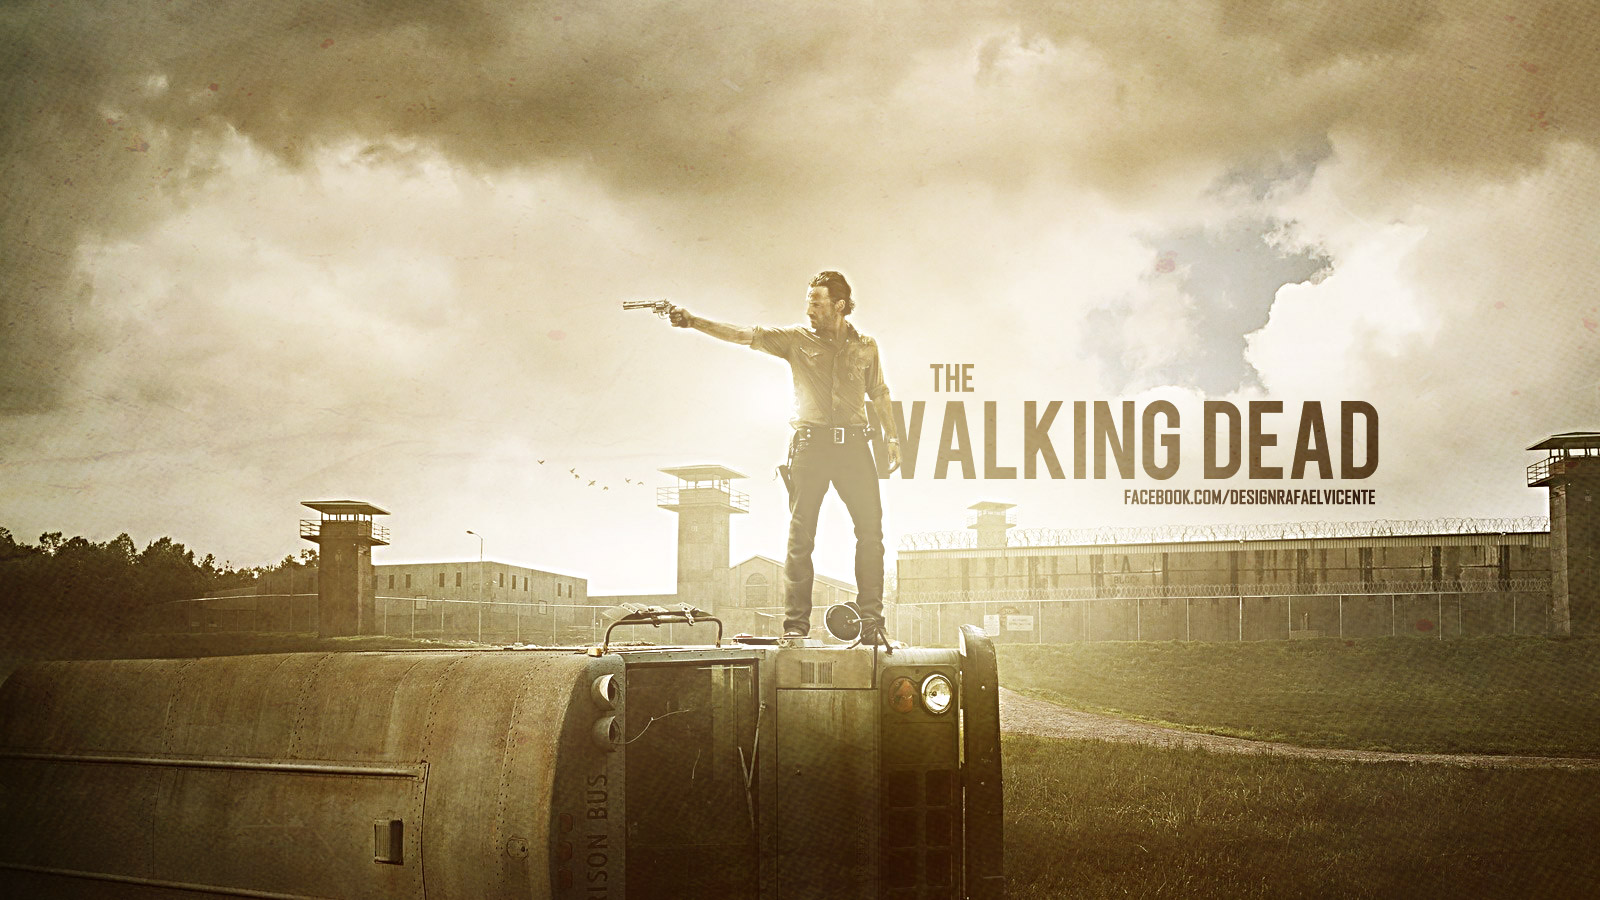 walking dead wallpaper and background 1600x900 id505186